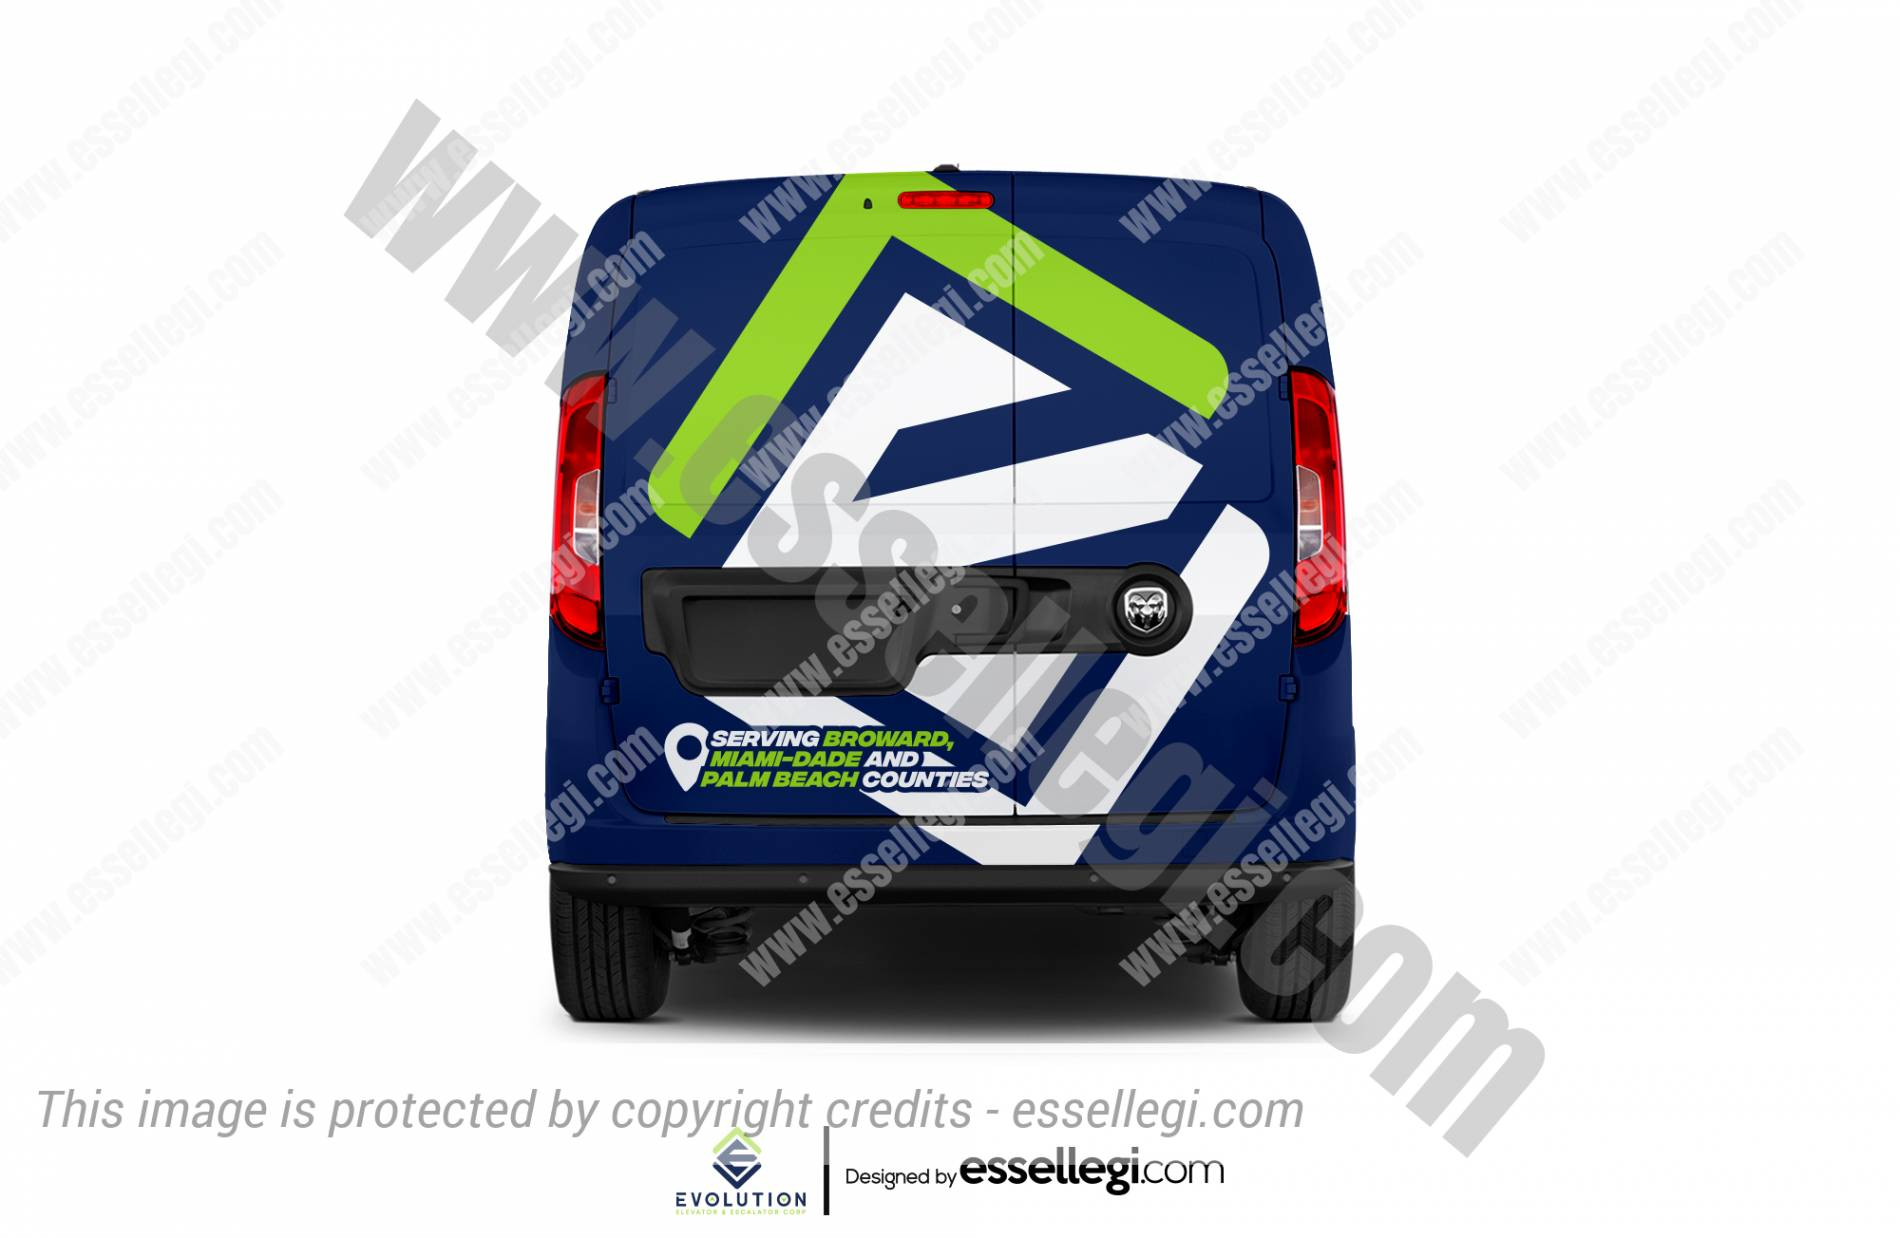 Dodge RAM ProMaster City Wrap Design. Dodge RAM ProMaster City Wrap | Van Wrap Design by Essellegi. Van Signs, Van Signage, Van Wrapping, Van Signwriting, Van Wrap Designer, Signs for Van, Van Logo, Van Graphic by Essellegi.